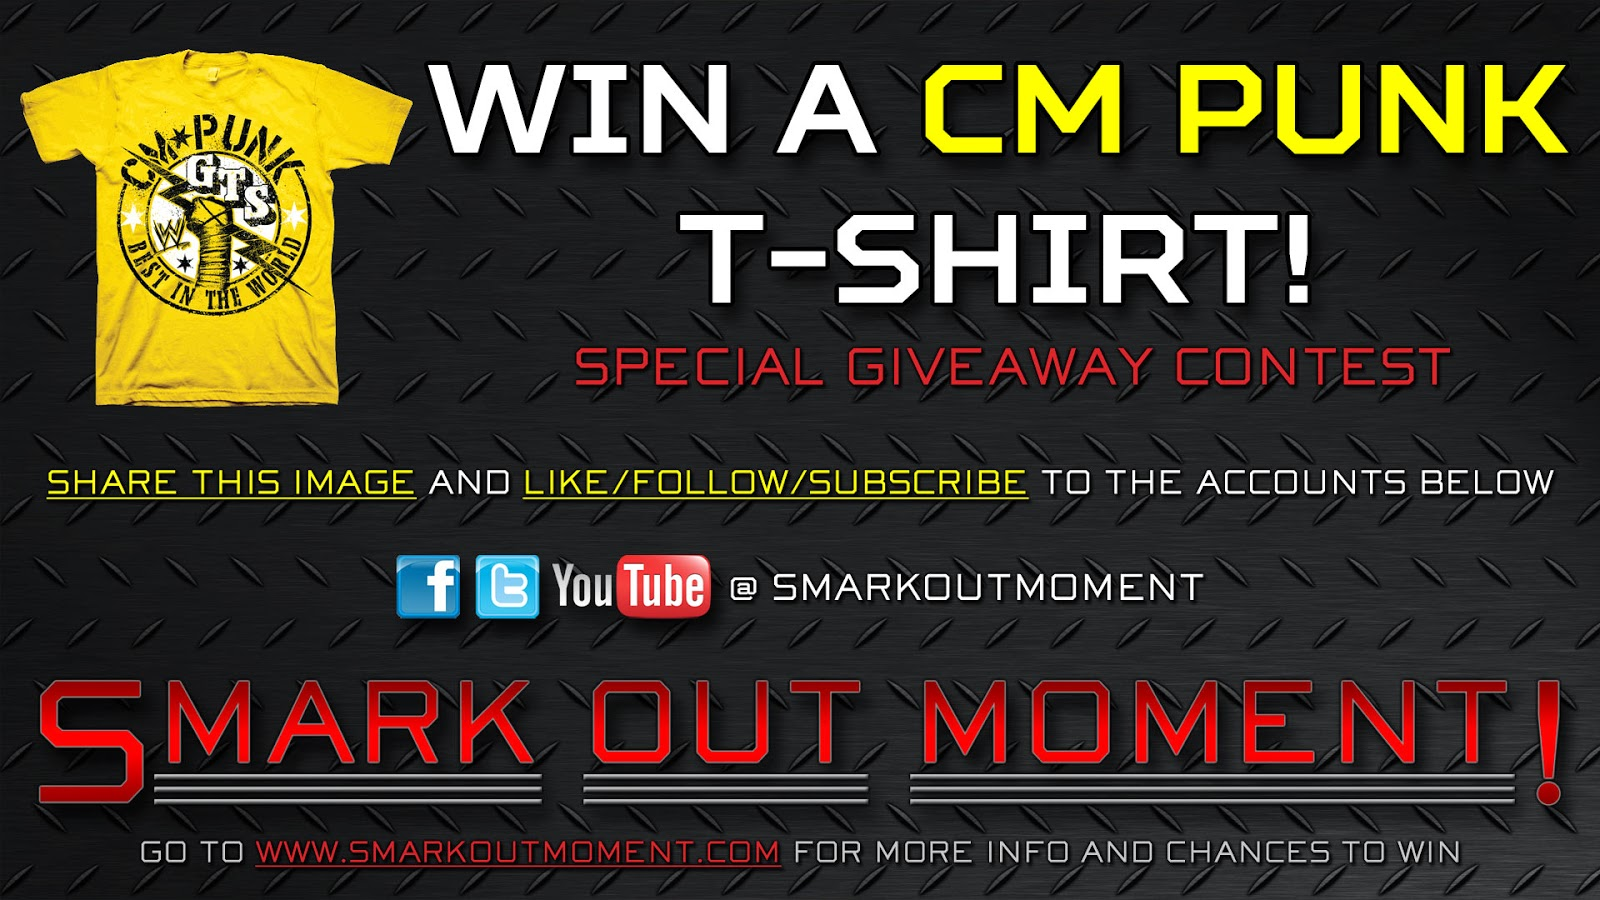 win a free CM Punk t-shirt by subscribing to Smark Out Moment